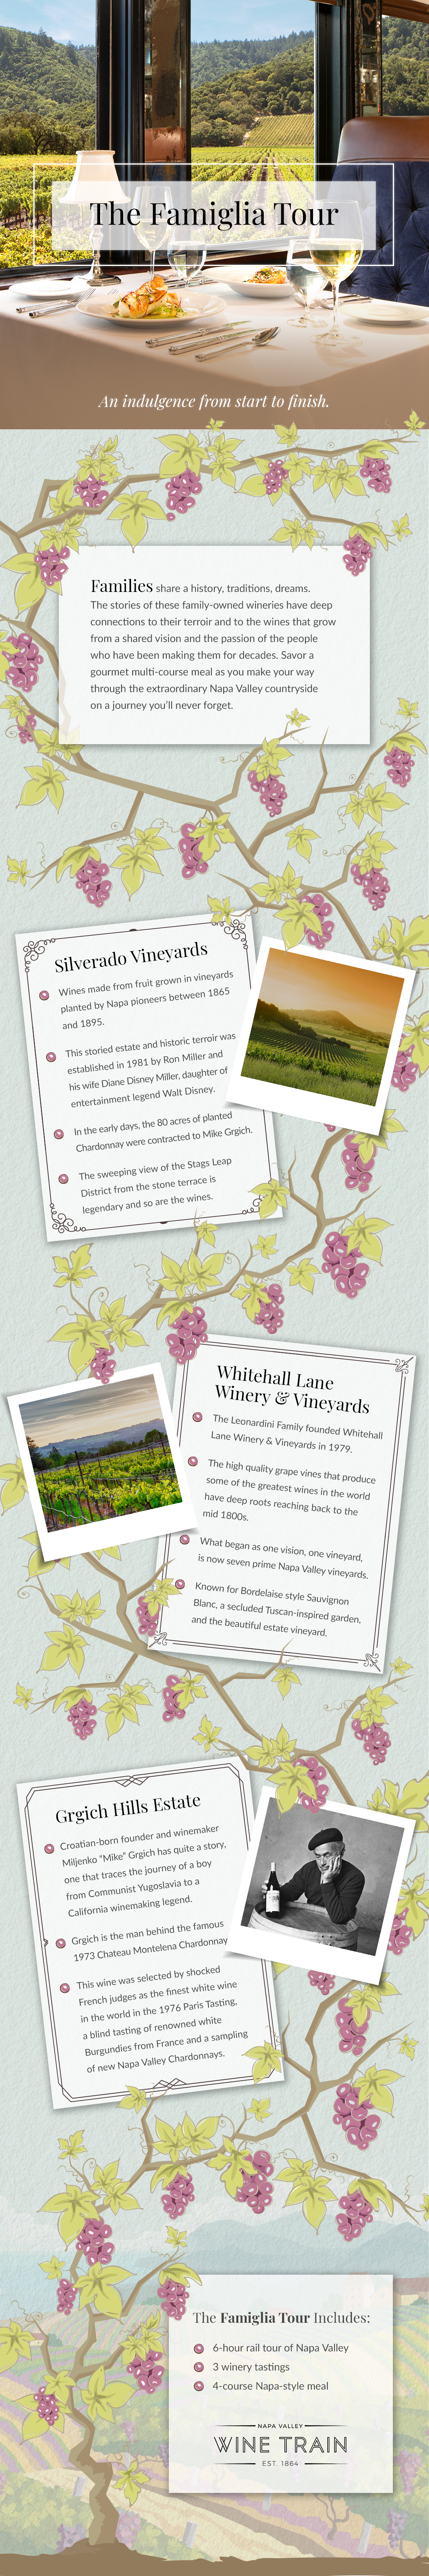 An infographic on the family owned vineyards in Napa Valley.